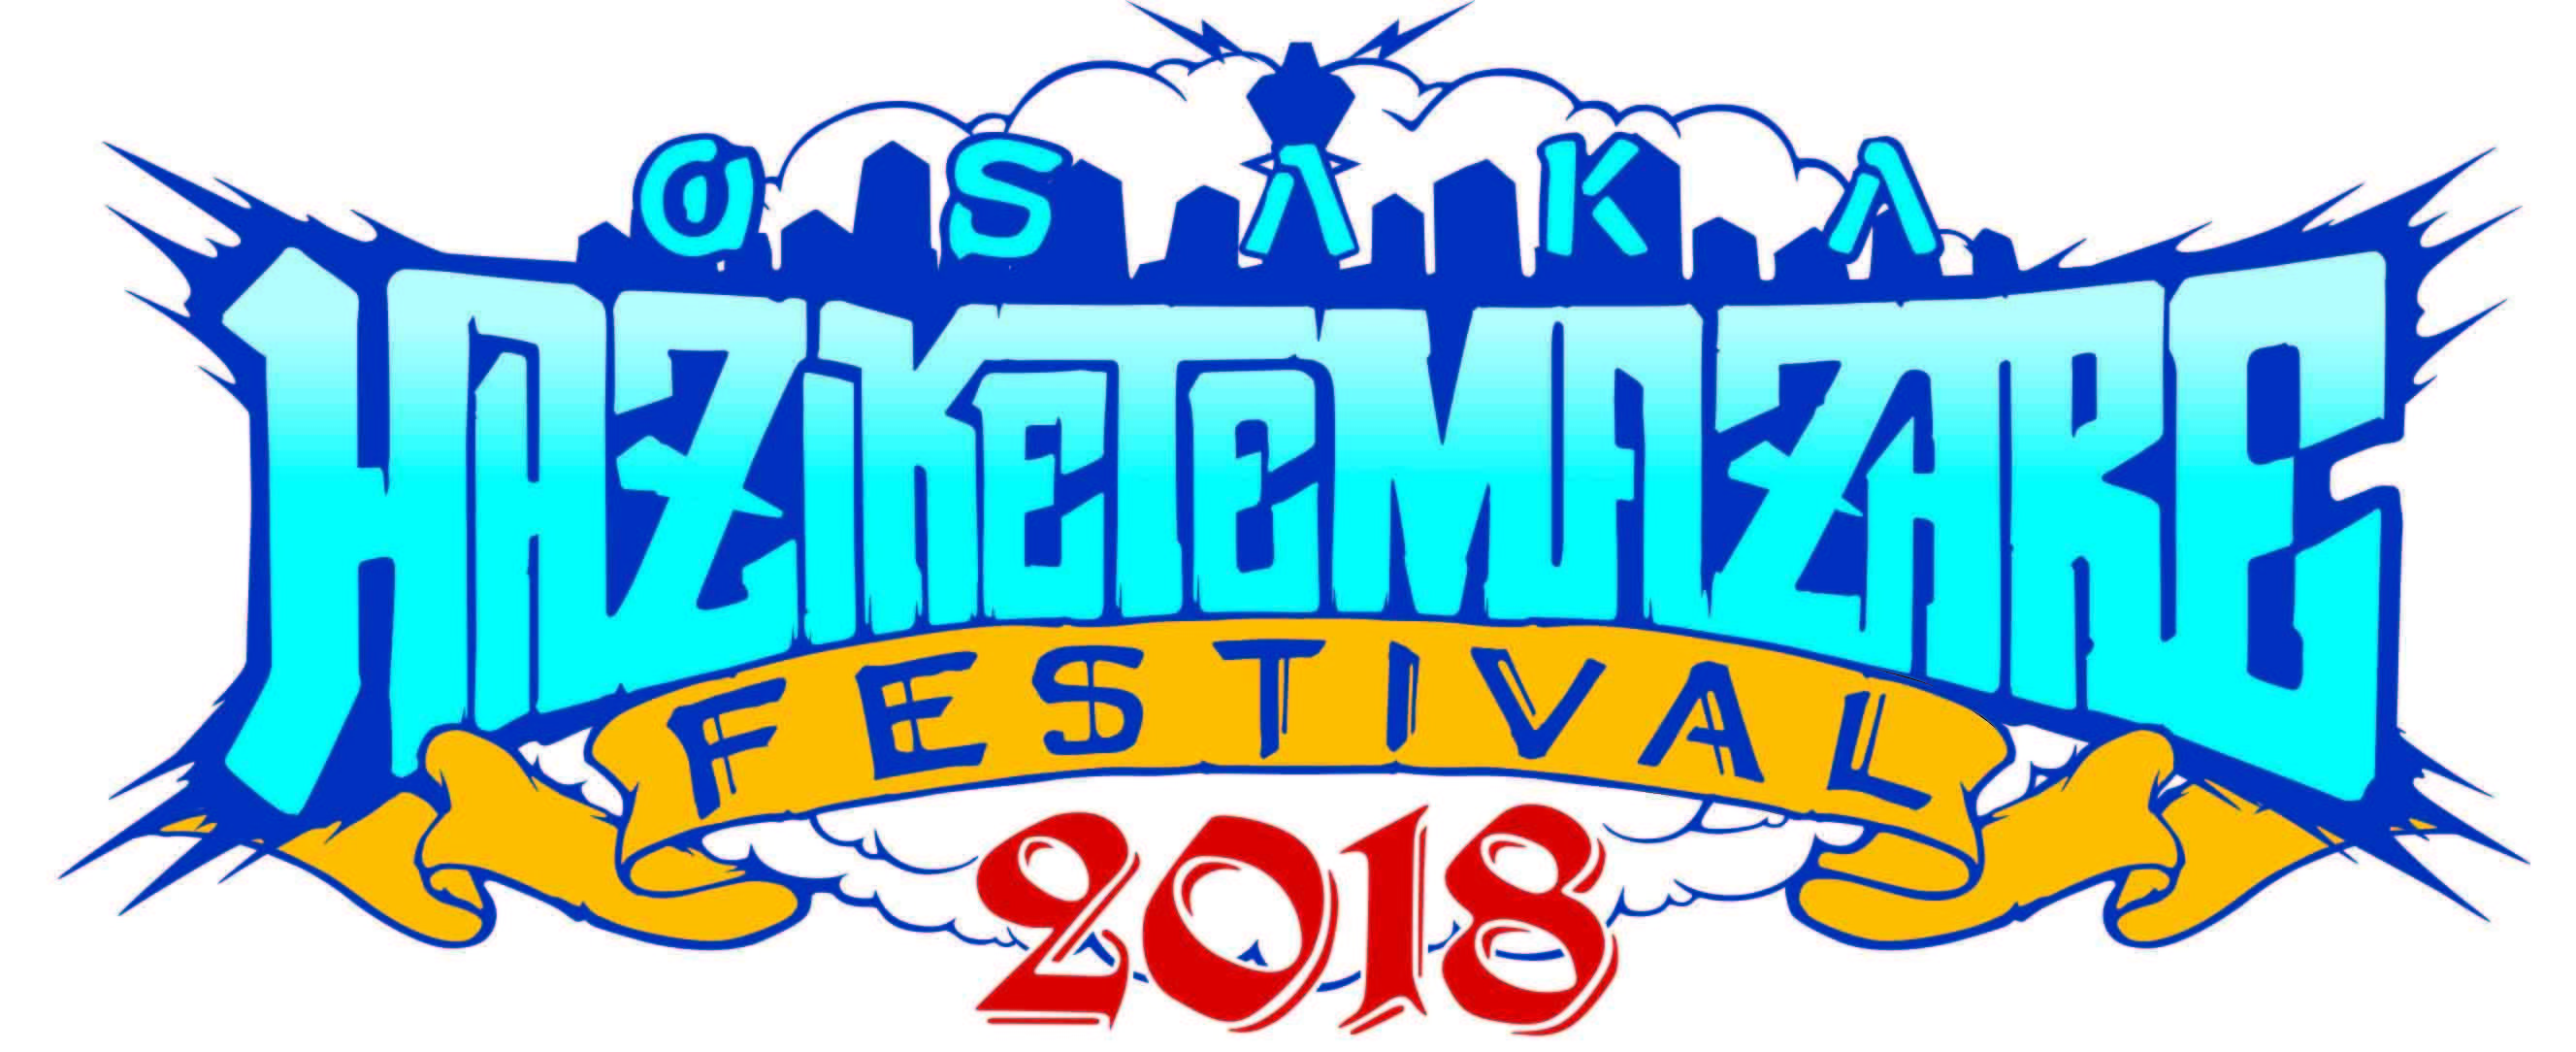 HEY-SMITH Presents OSAKA HAZIKETEMAZARE FESTIVAL 2018